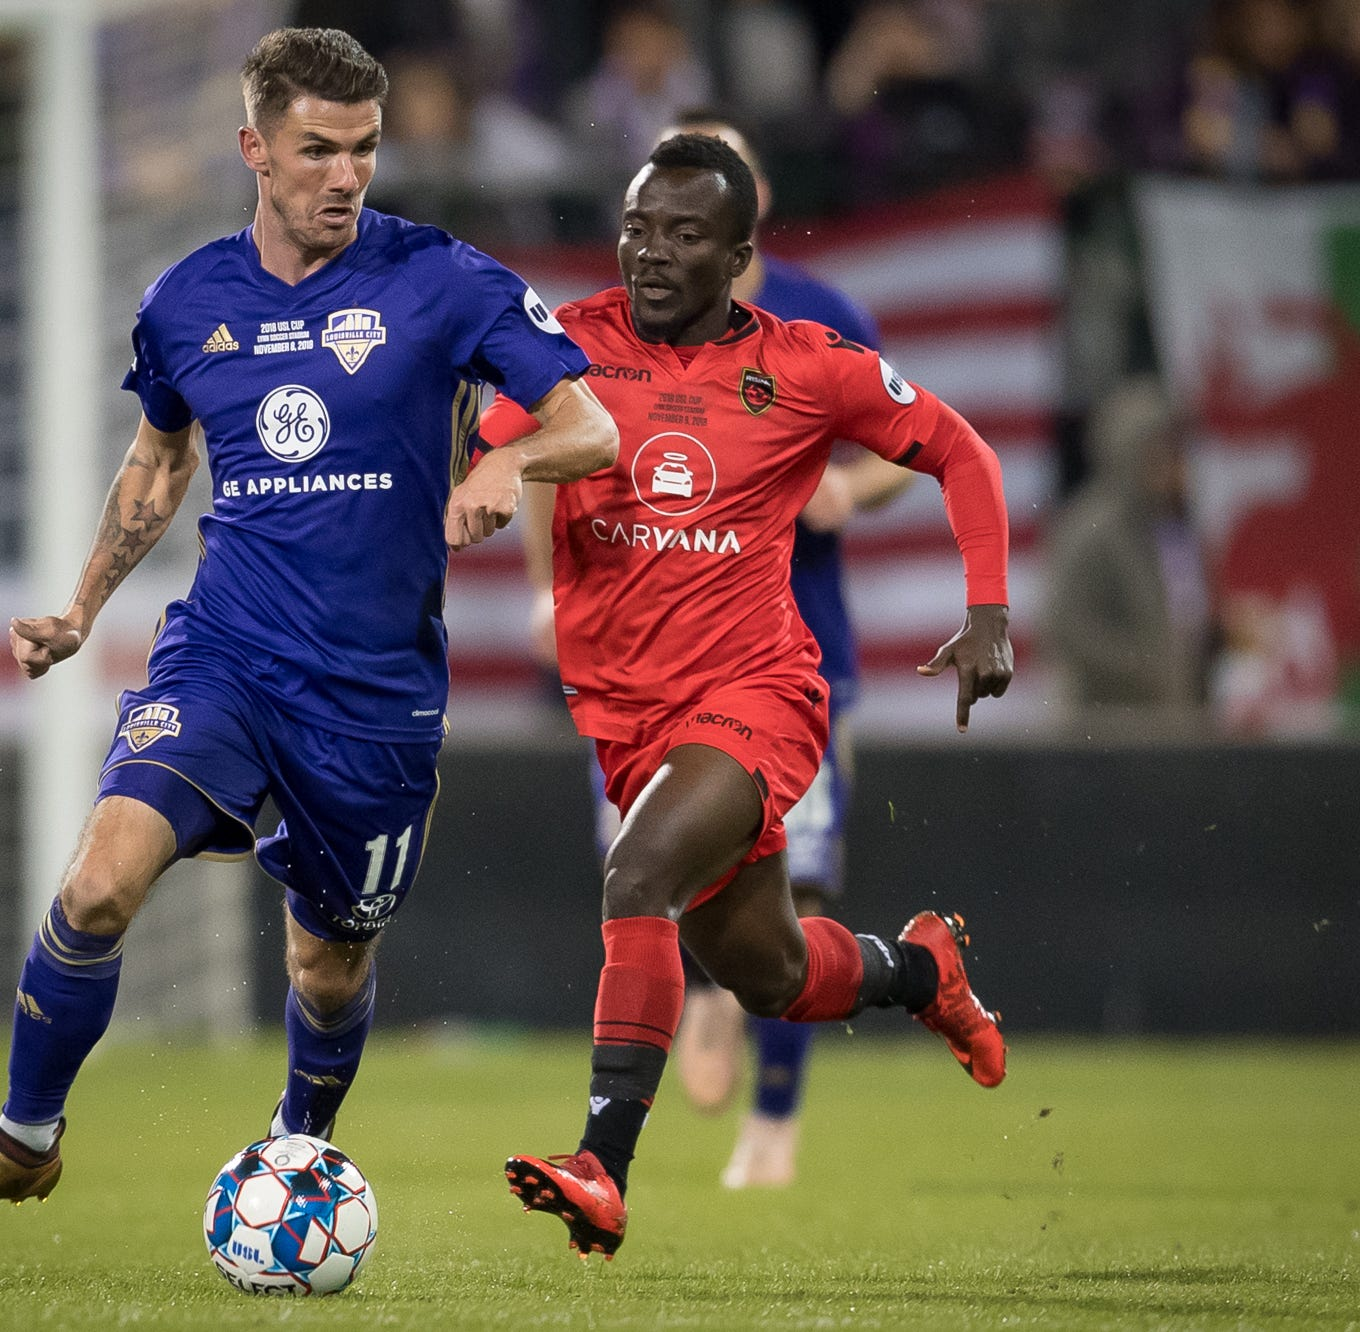 Louisville City FC beats Reading United AC, advances to U.S. Open Cup third round